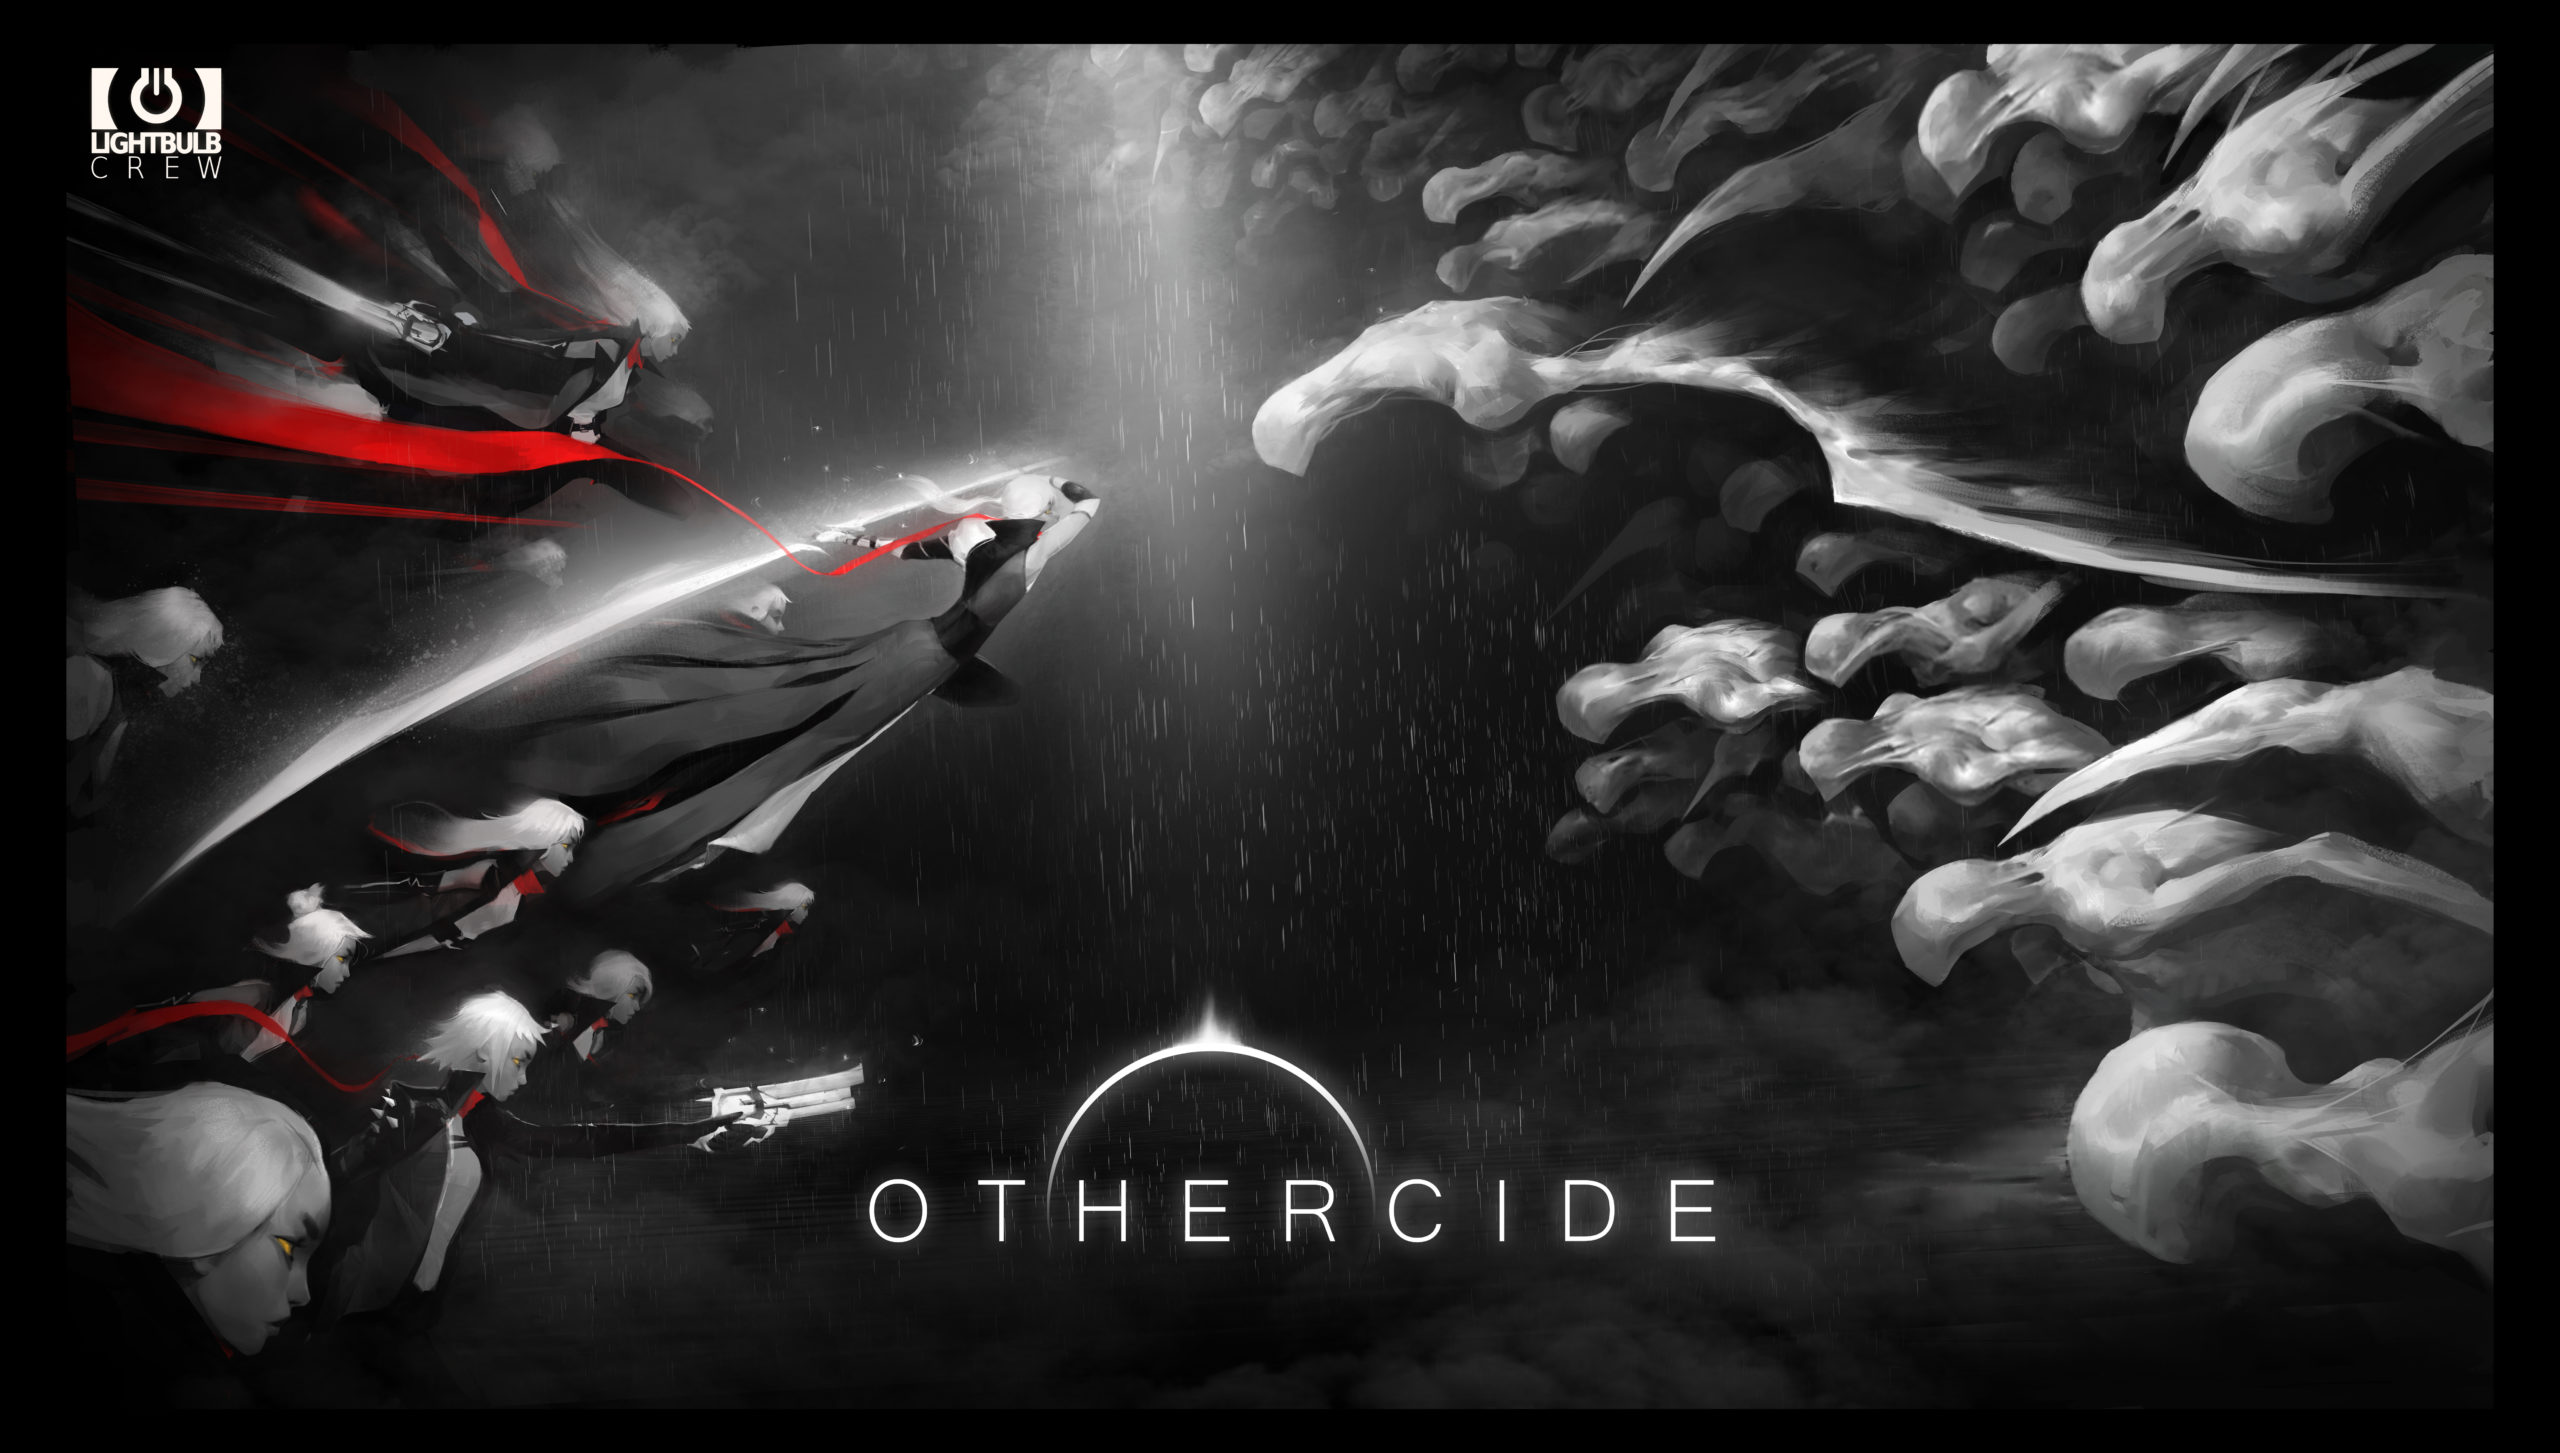 Othercide - key art